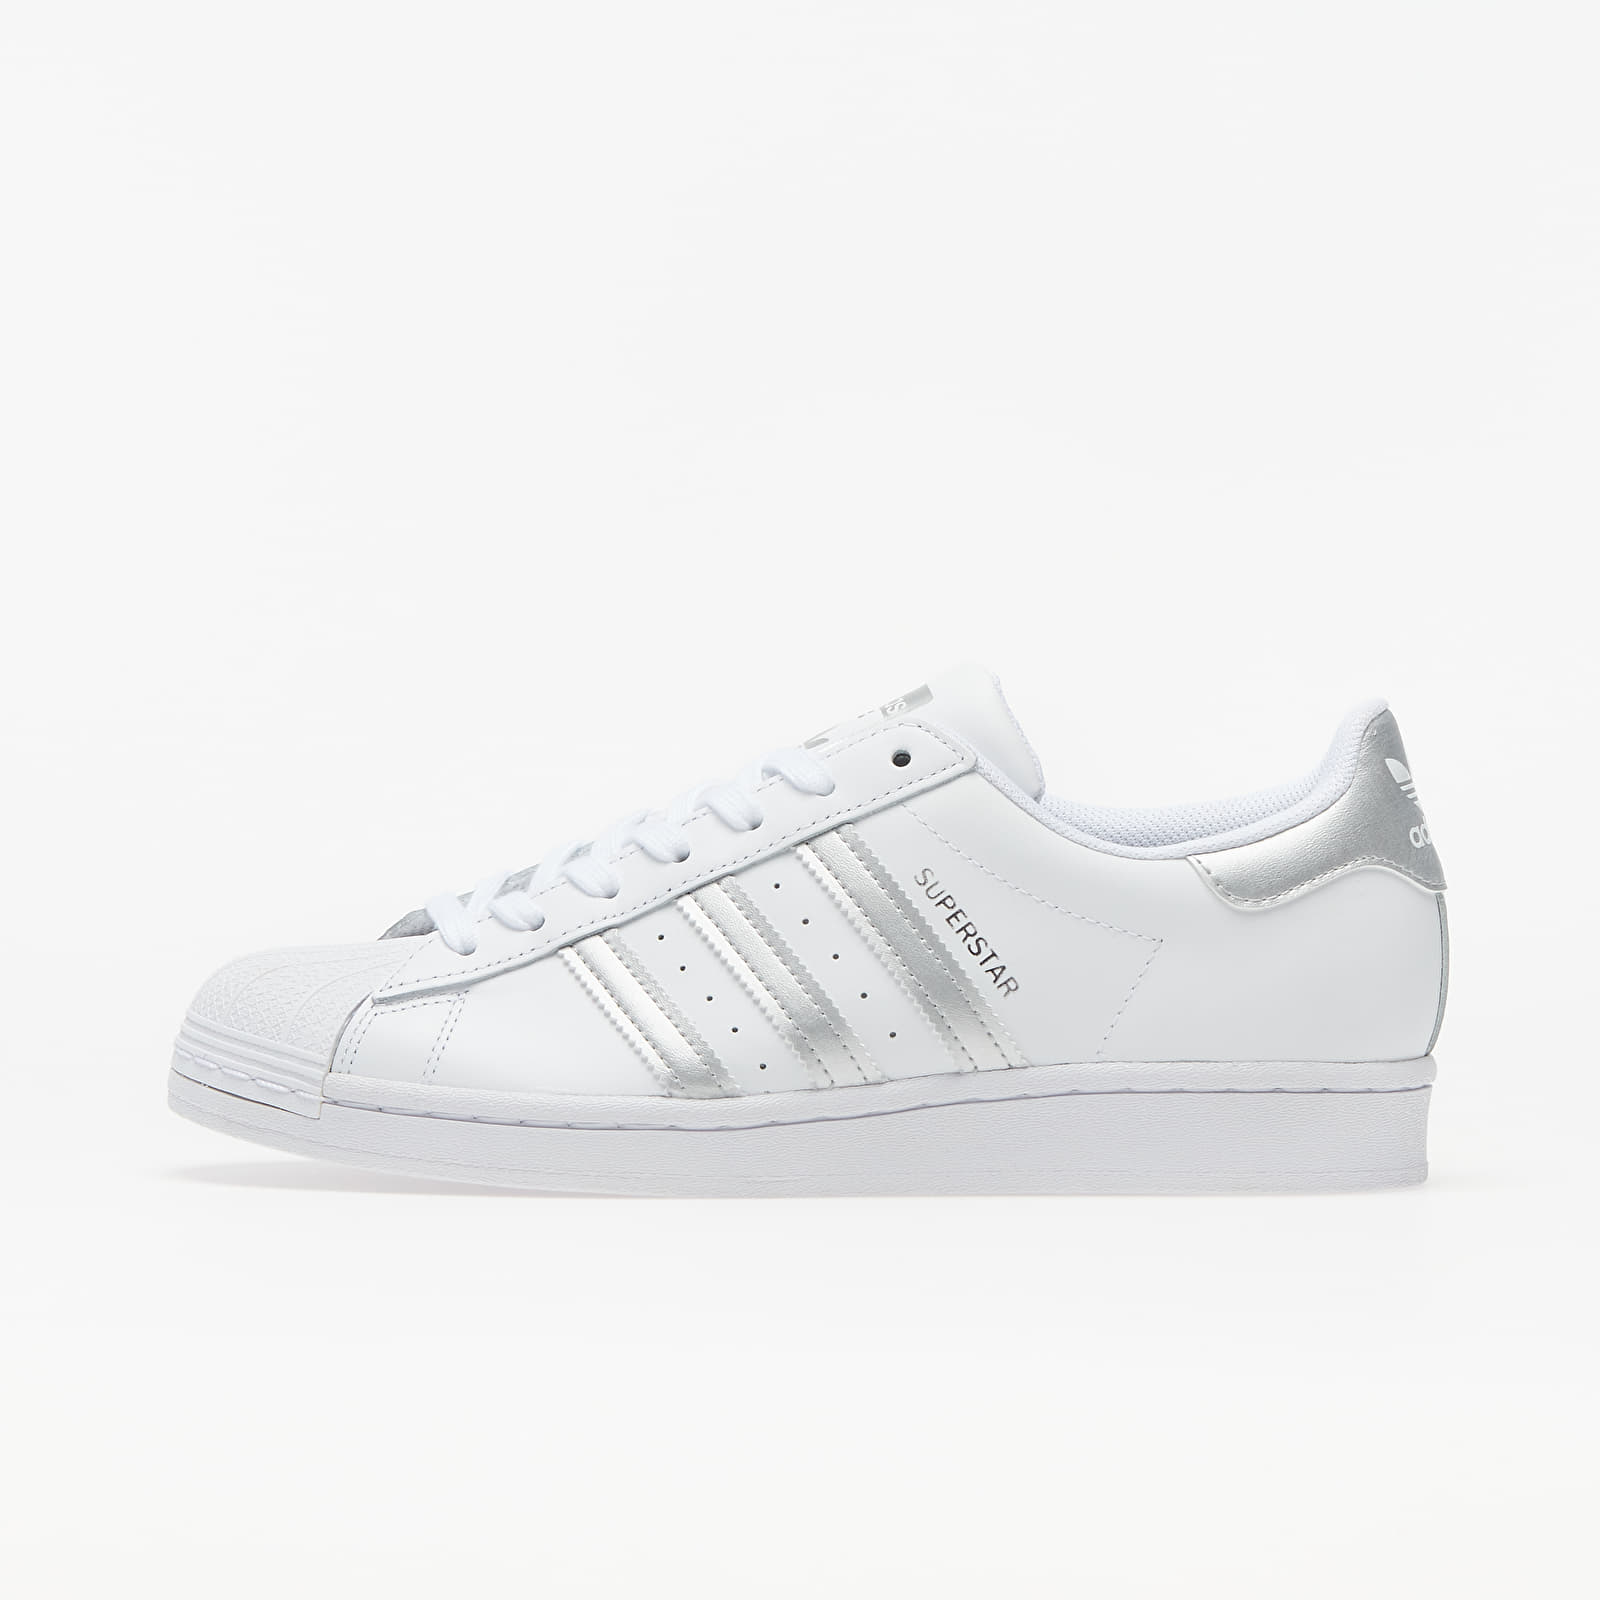 Men's shoes adidas Superstar Ftw White/ Silver Metalic/ Ftw White